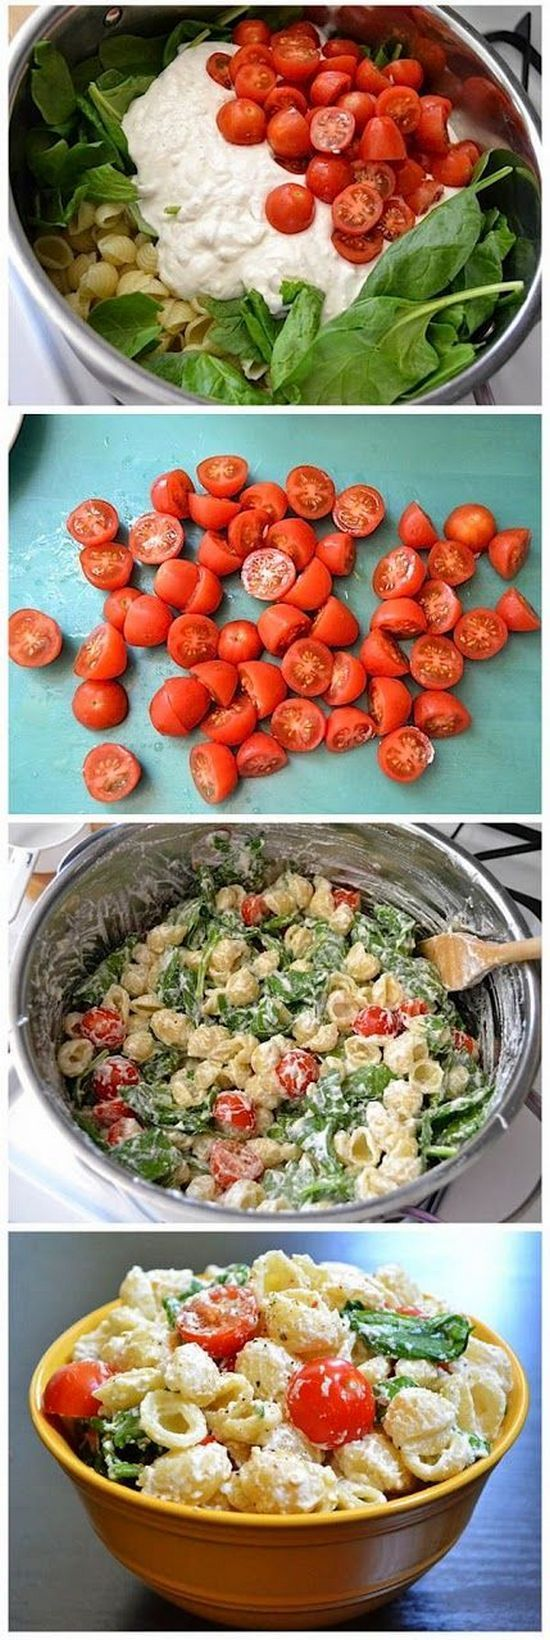 Roasted Garlic Pasta Salad